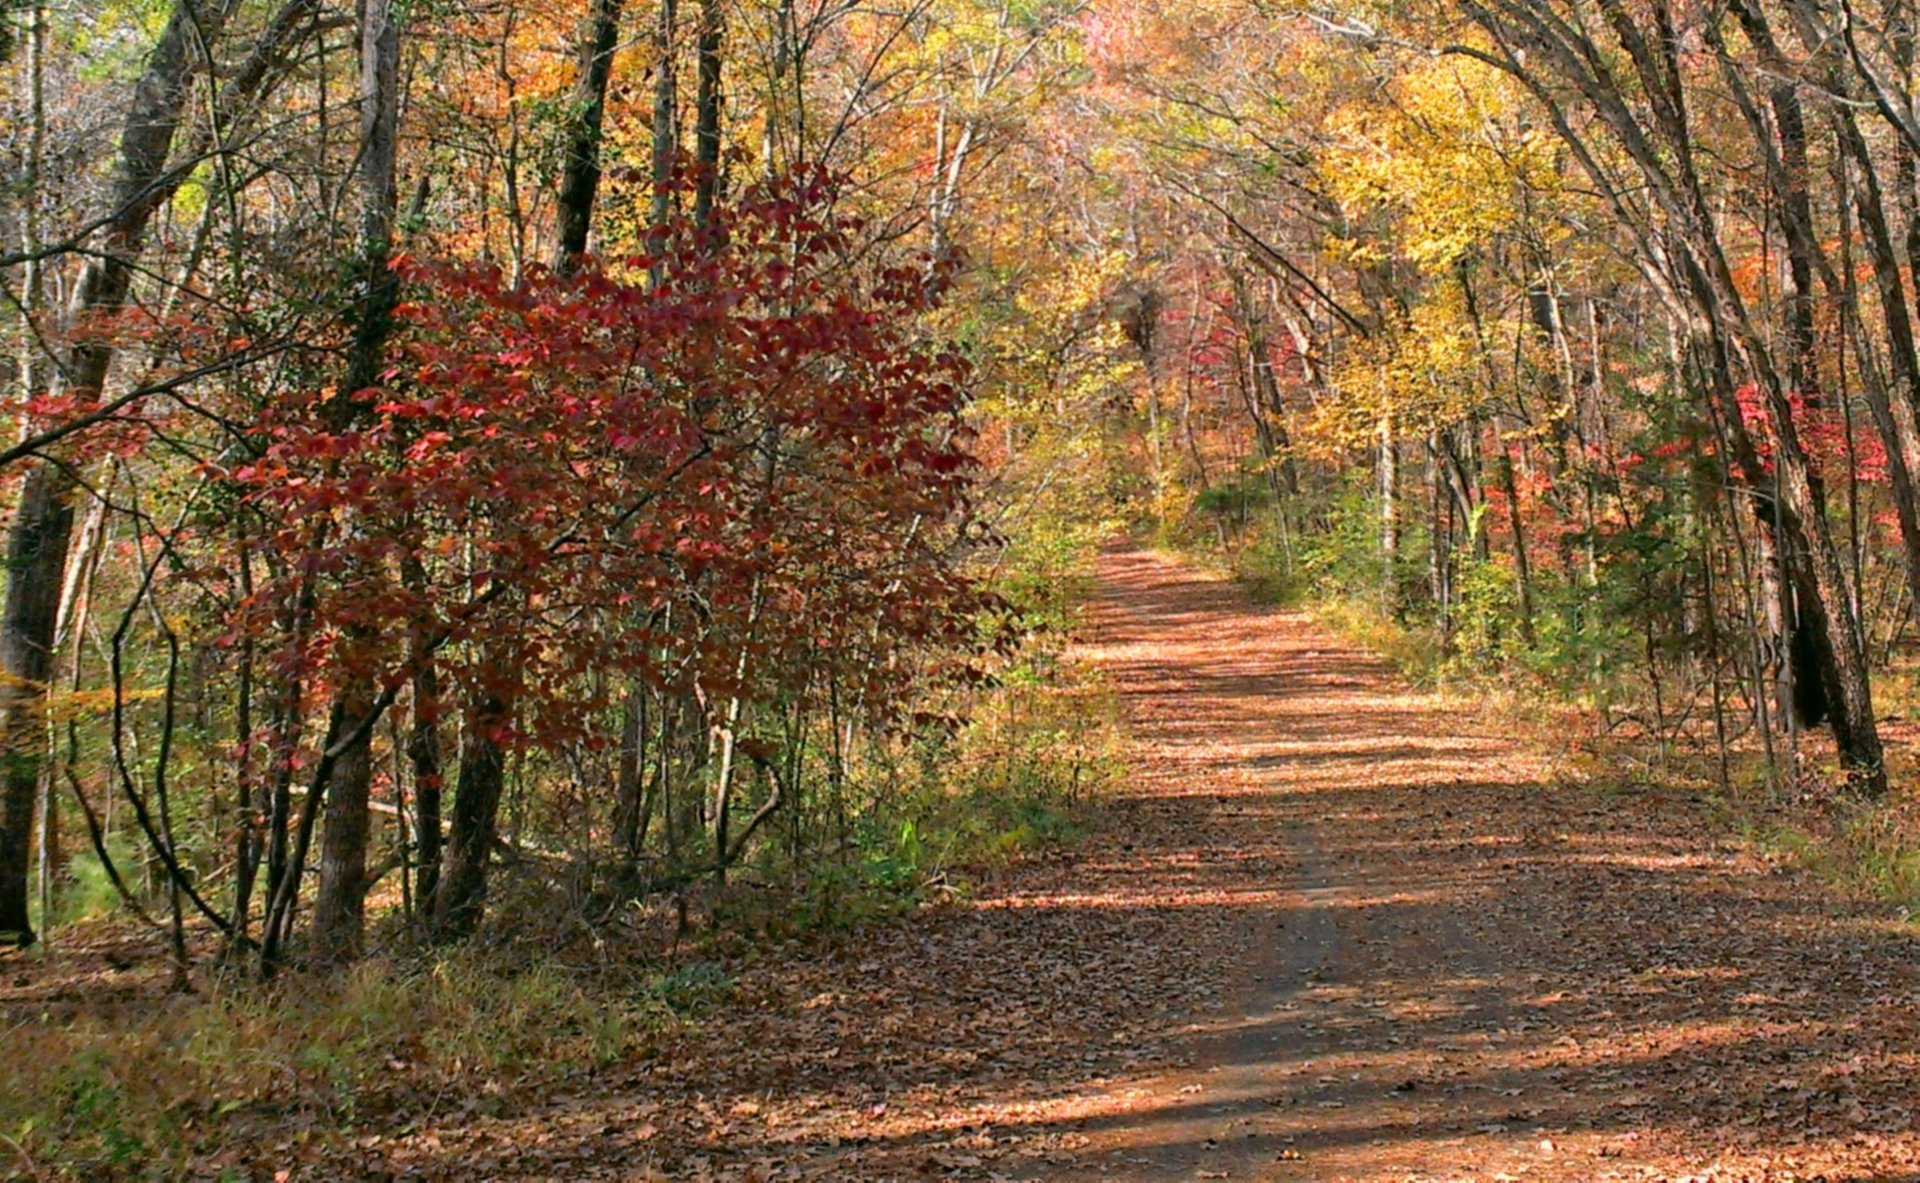 Autumn road in Tyler State Park, East Texas 2020